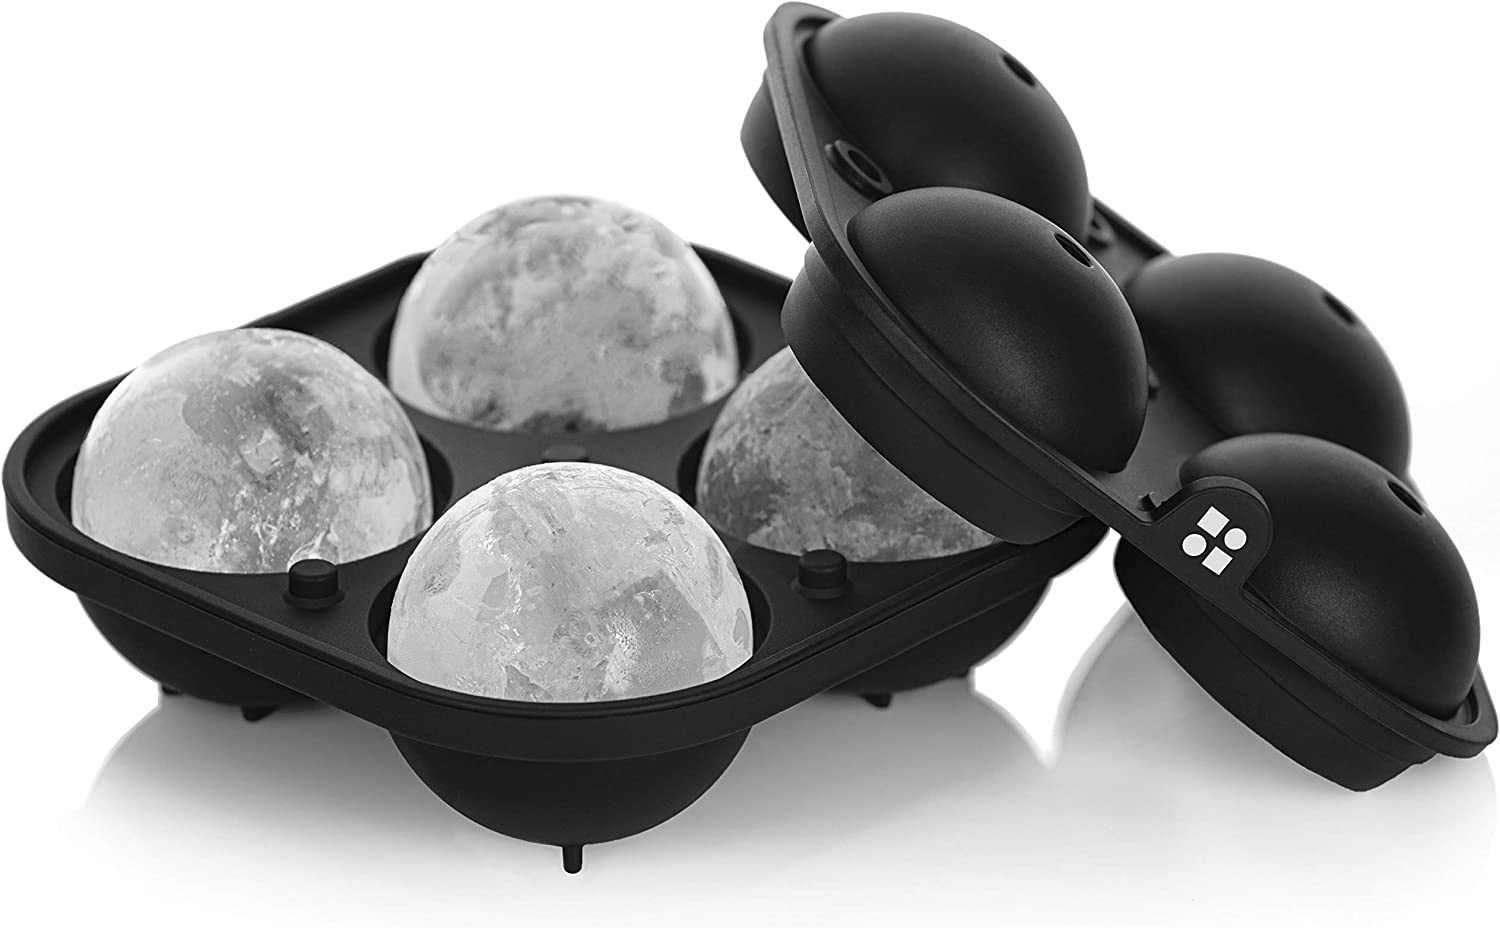 Makes 2.5 Inch Ice Balls Whiskey Ice Sphere Maker Black glacio Large Sphere Ice Mould Tray